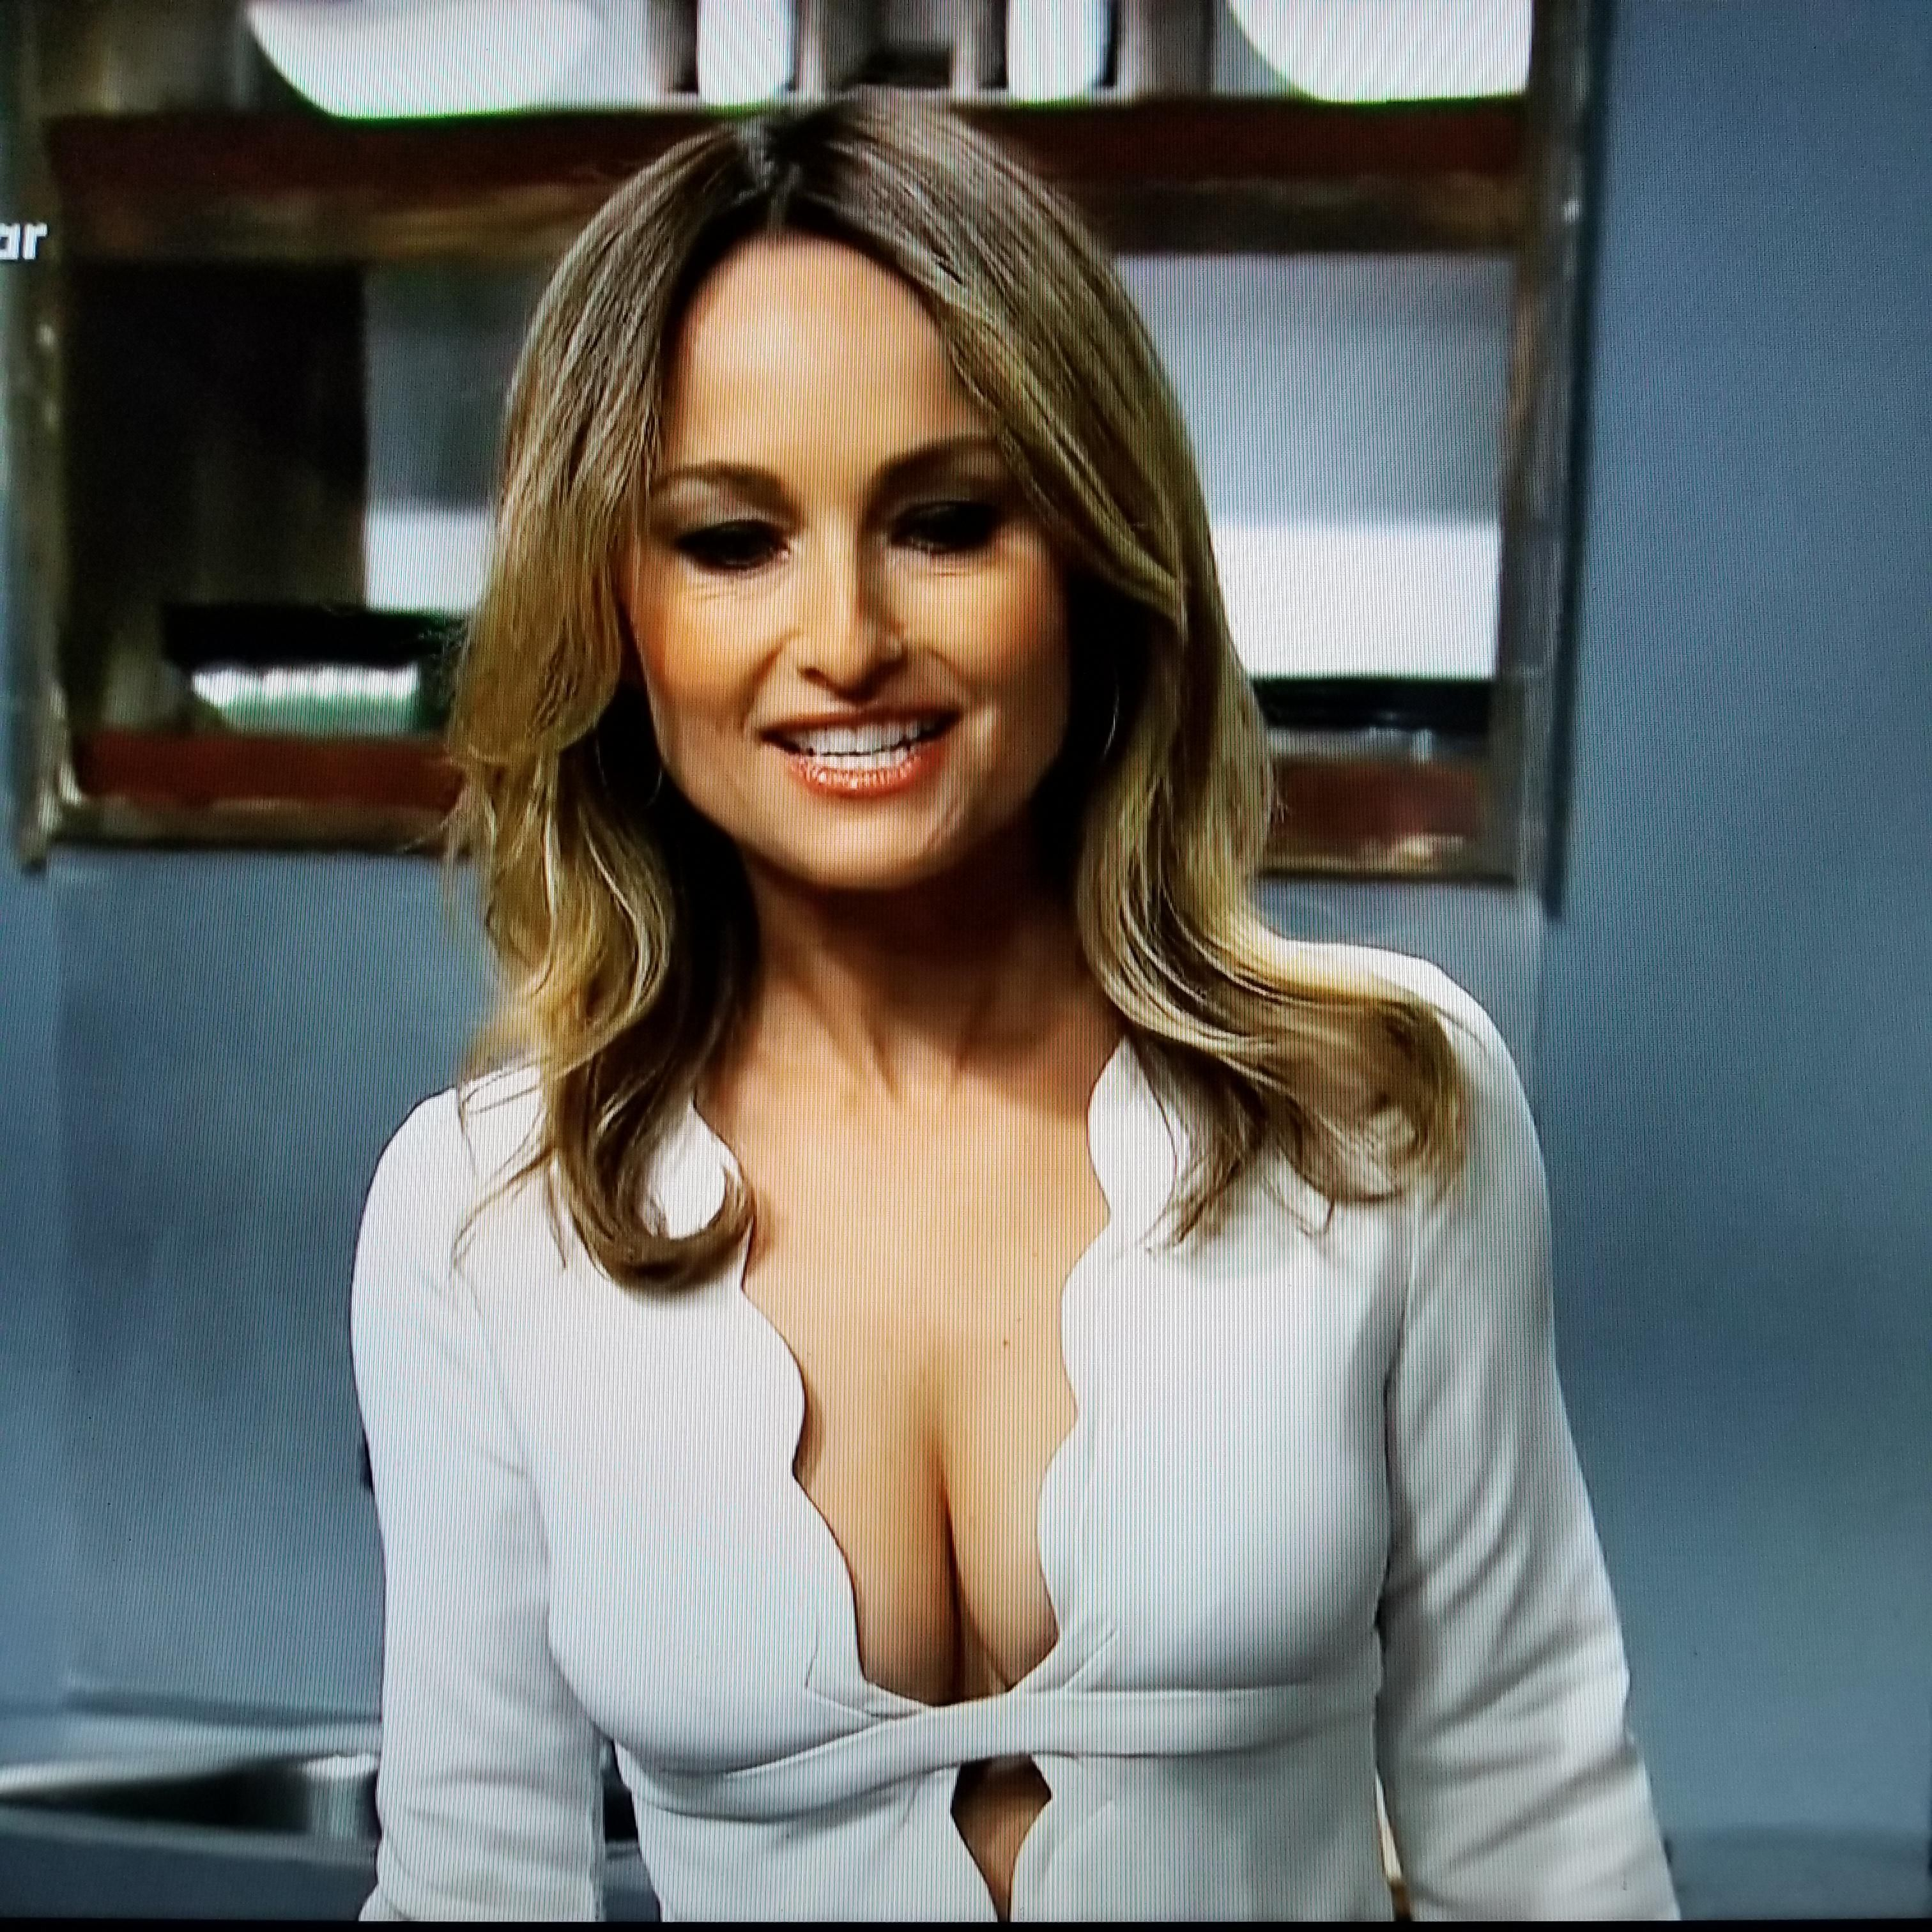 Pin by Dan on Worth Giada de laurentiis, Giada, Giada at